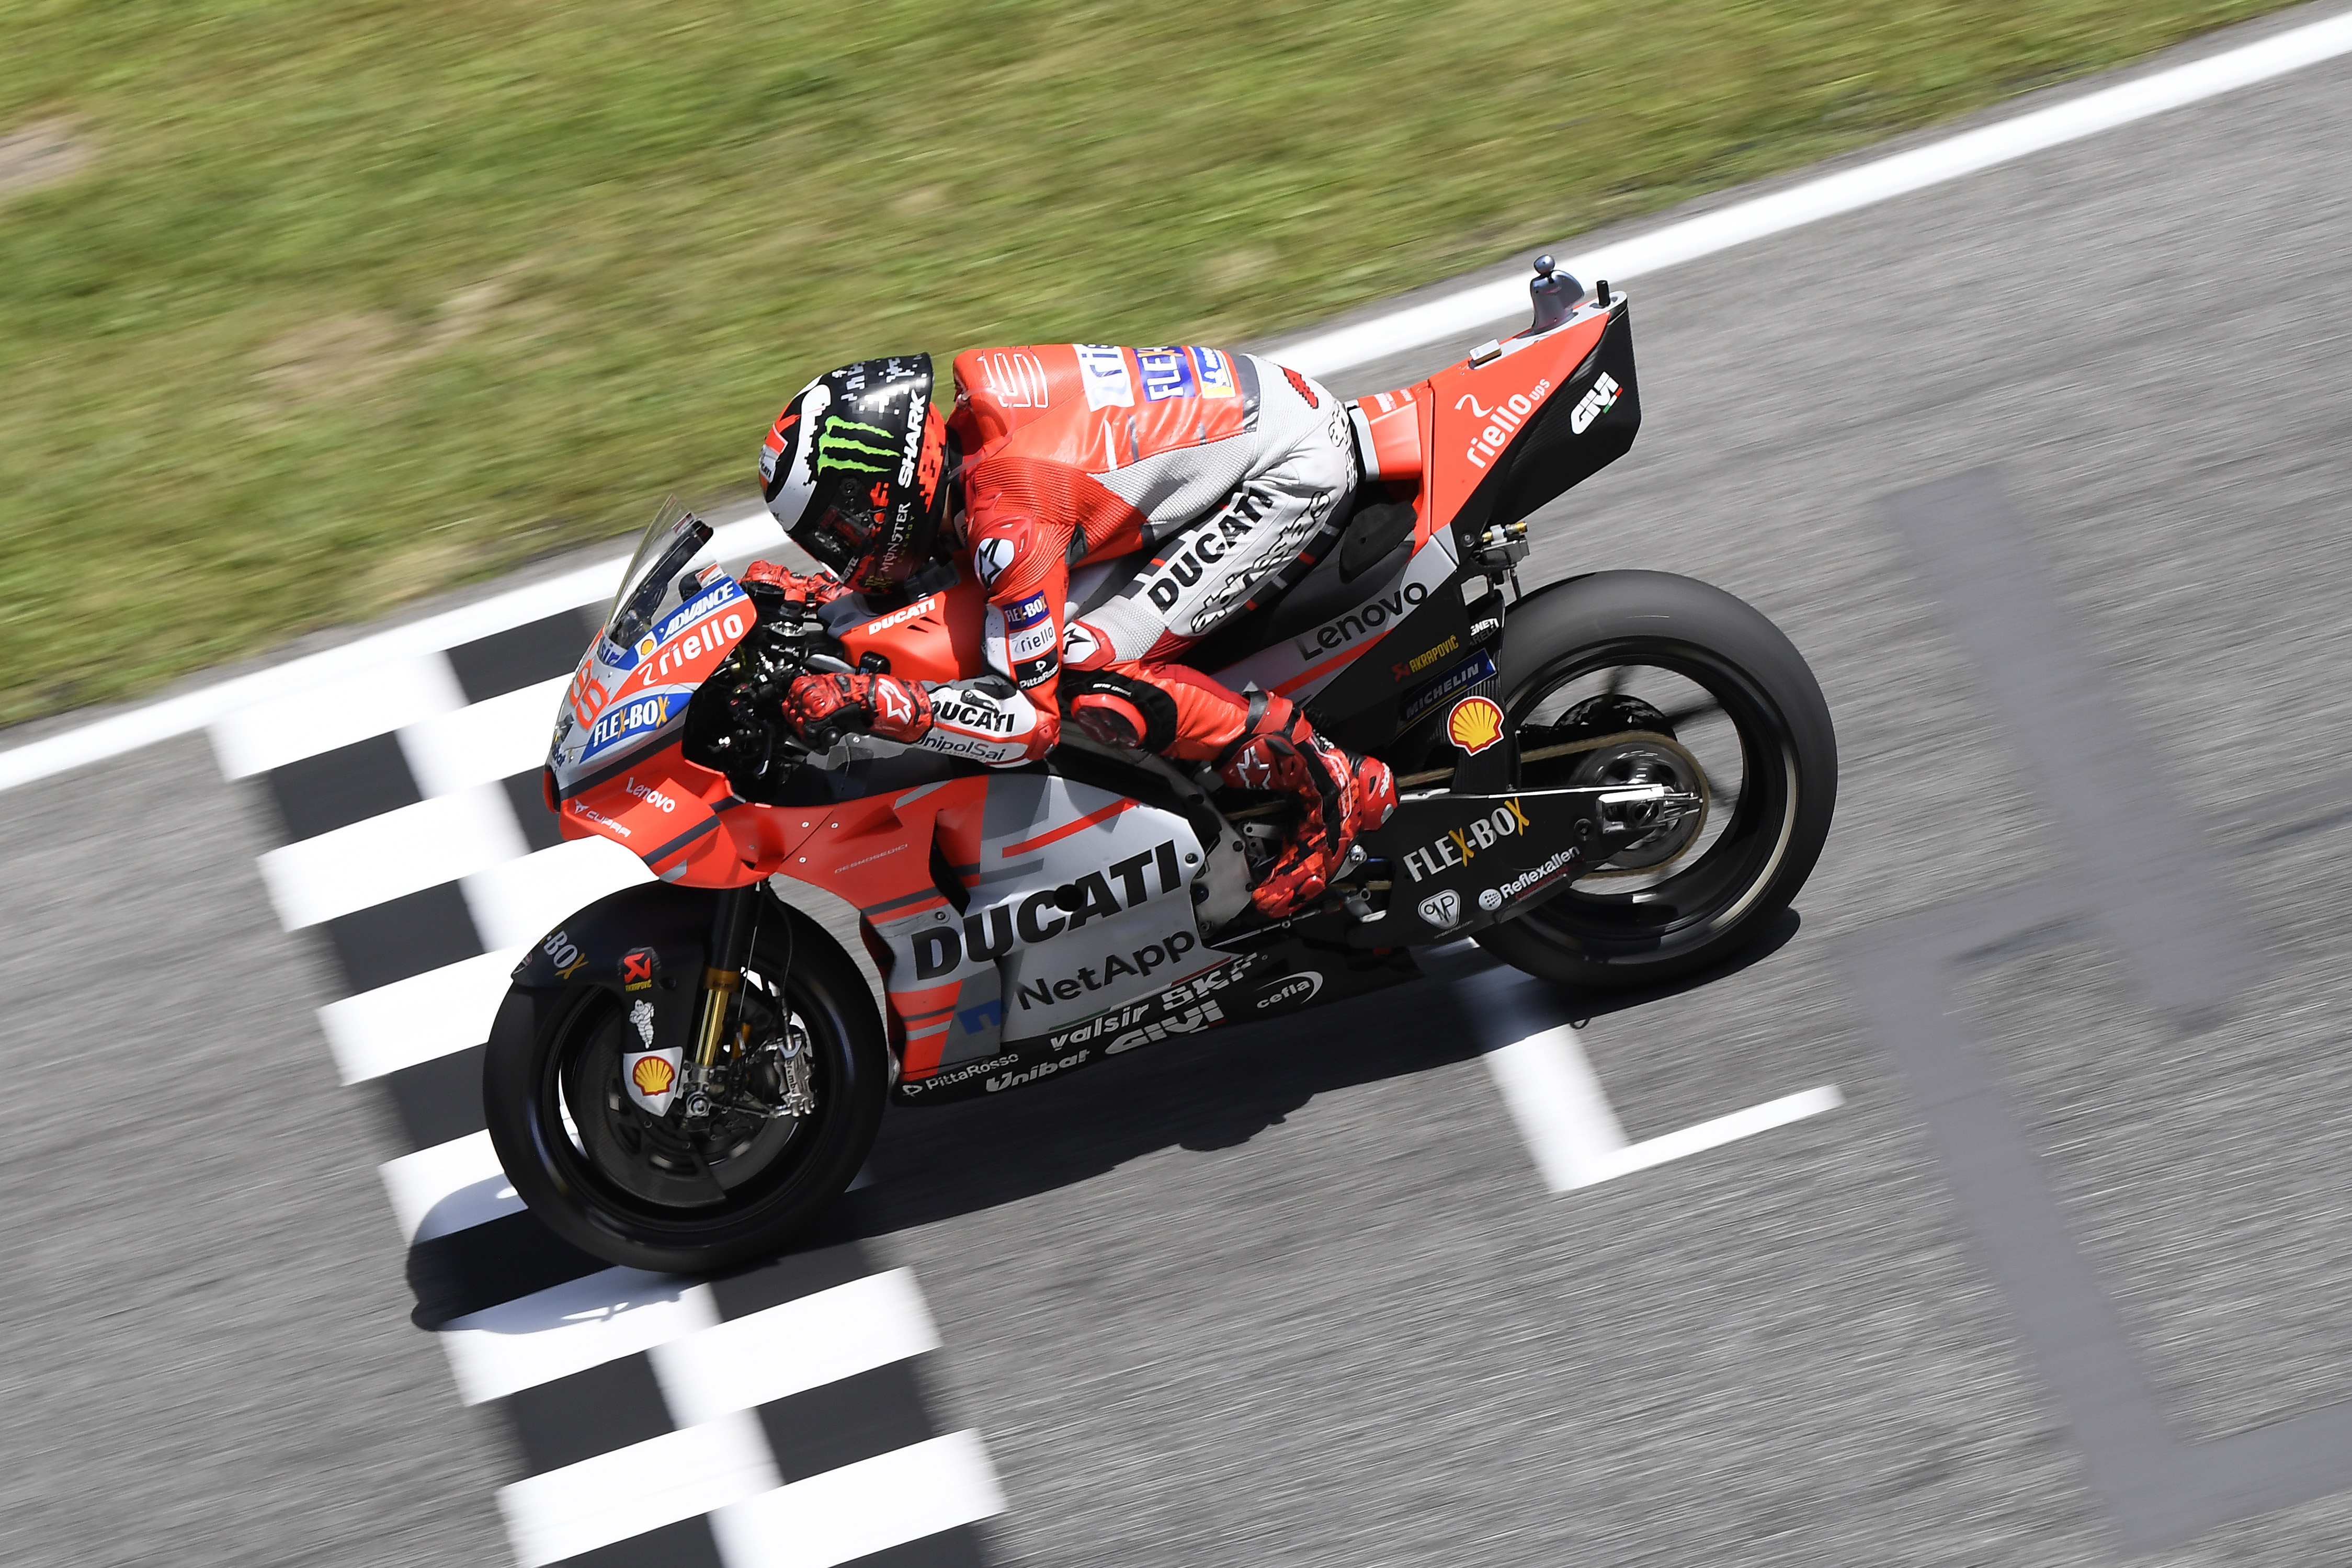 Just What On Earth Is Going On Motogp Silly Season Thepitcrewonline